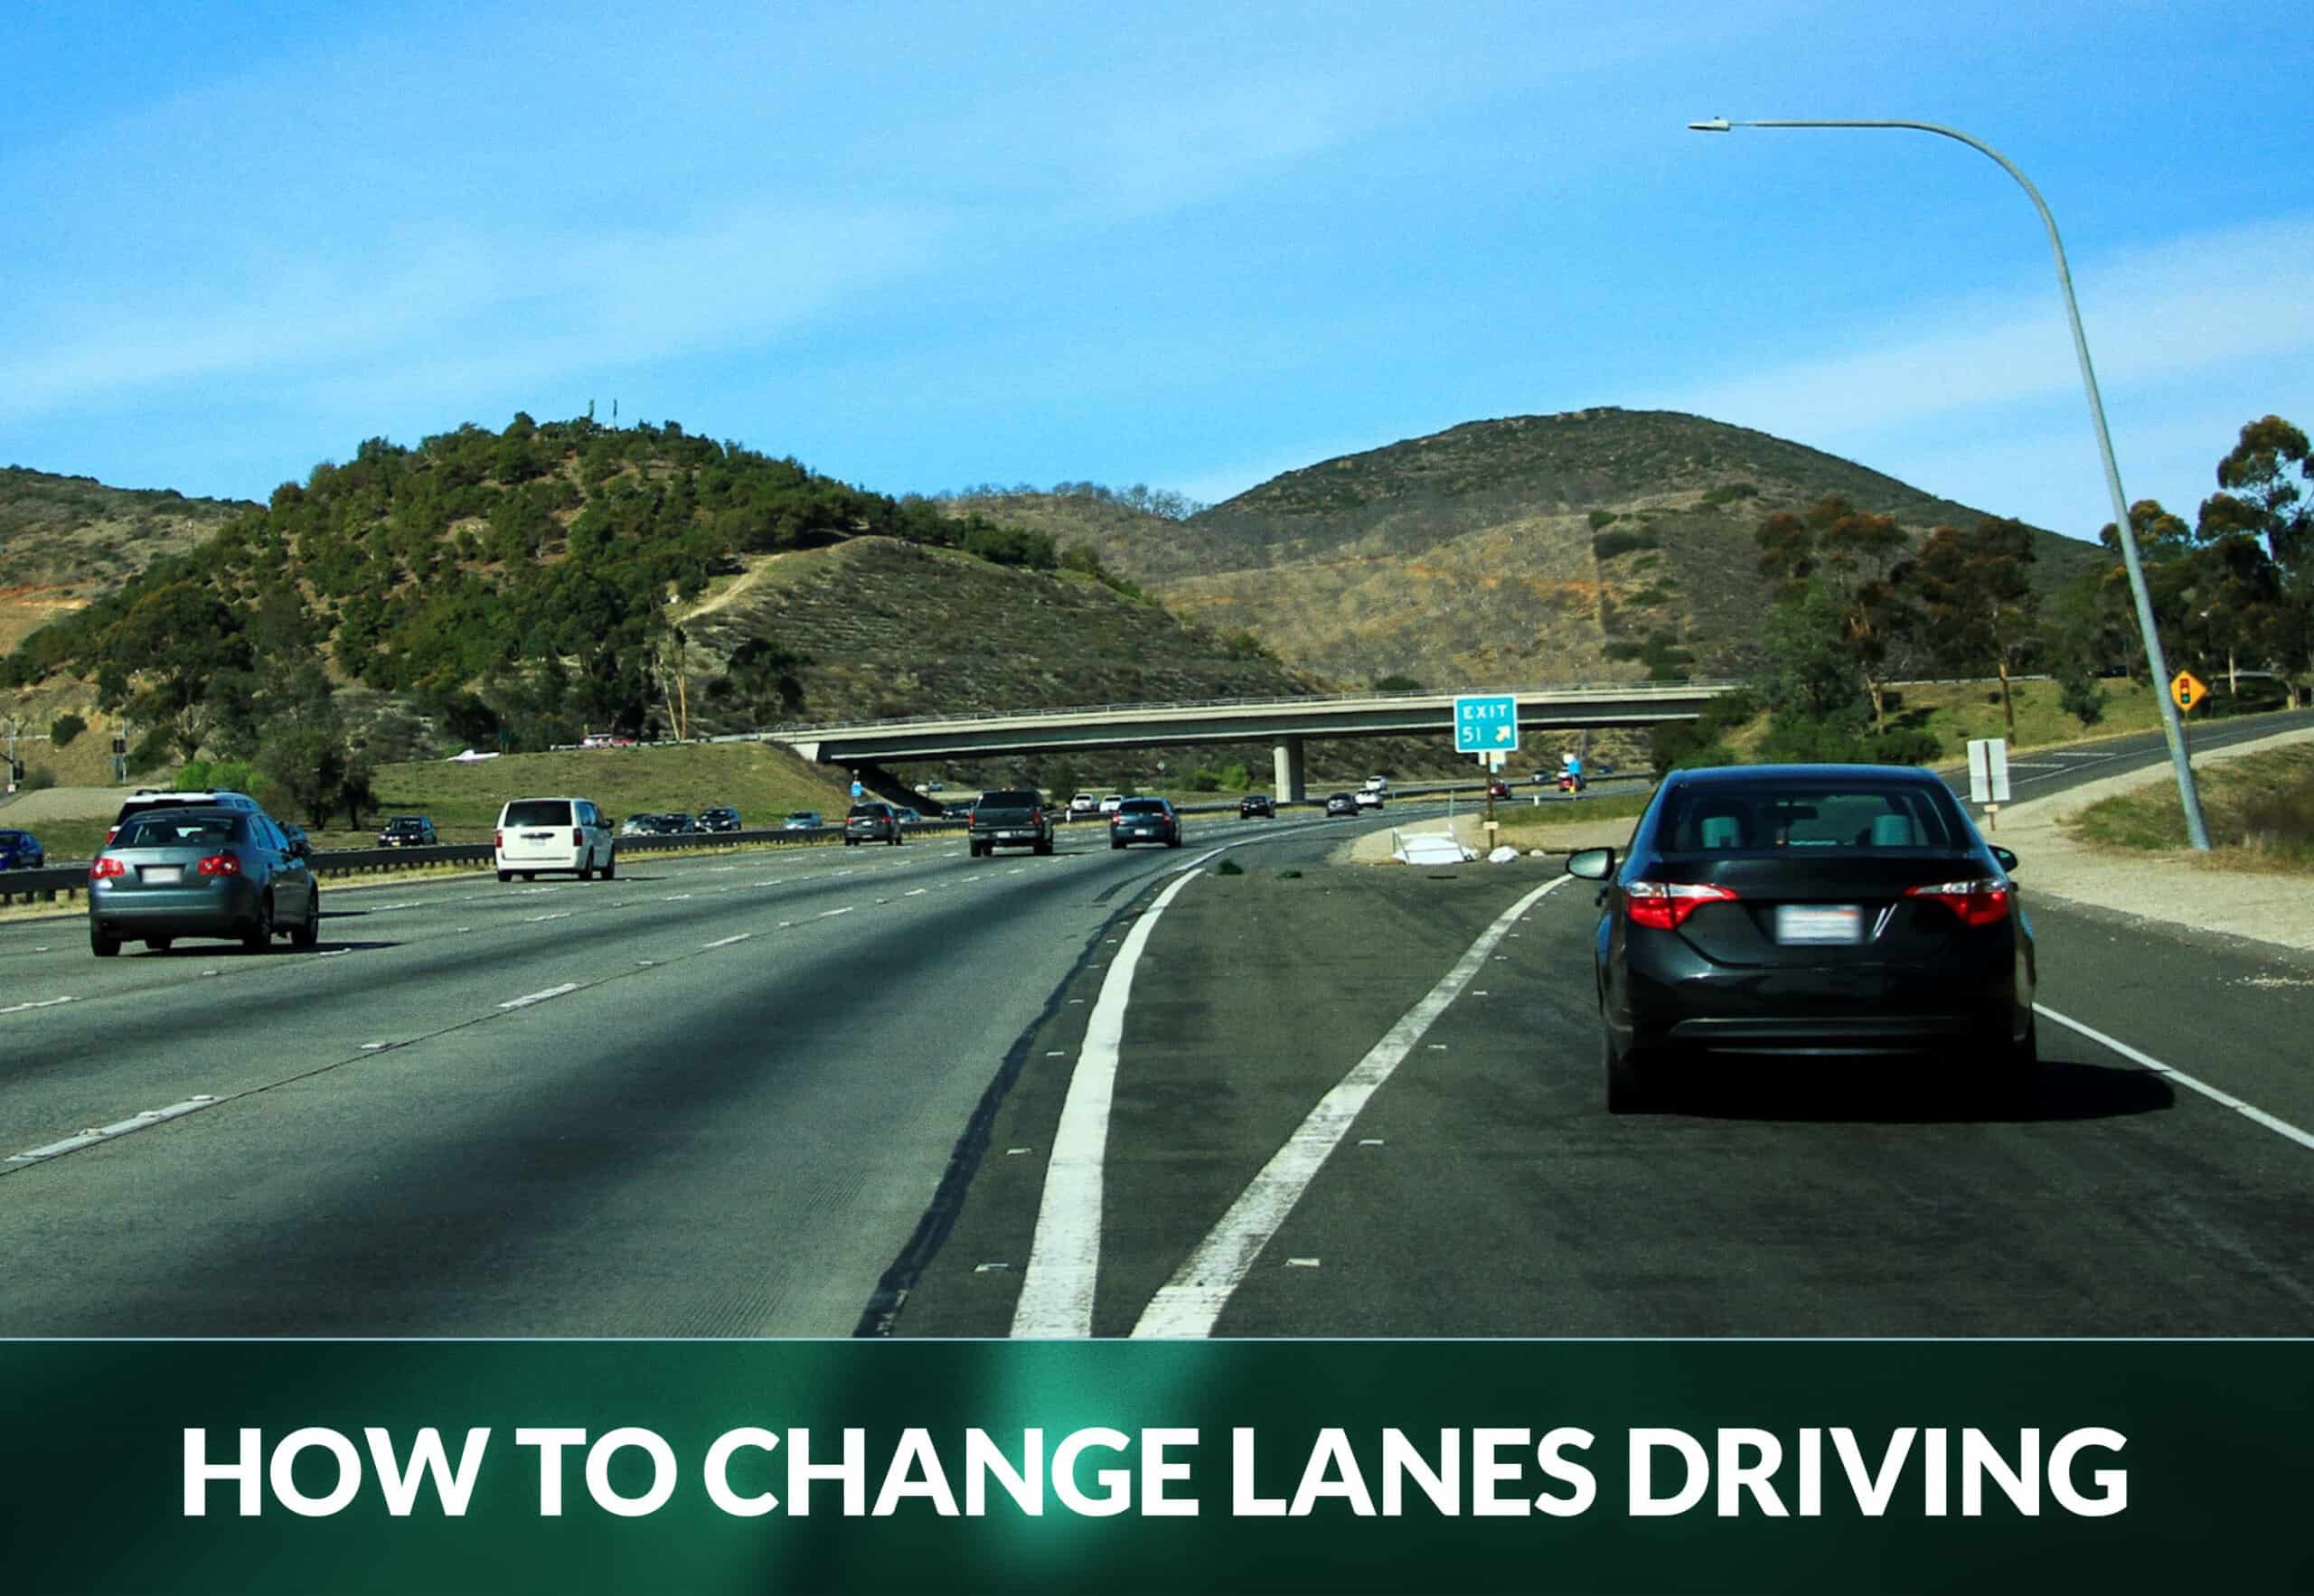 HOW TO CHANGE LANES DRIVING